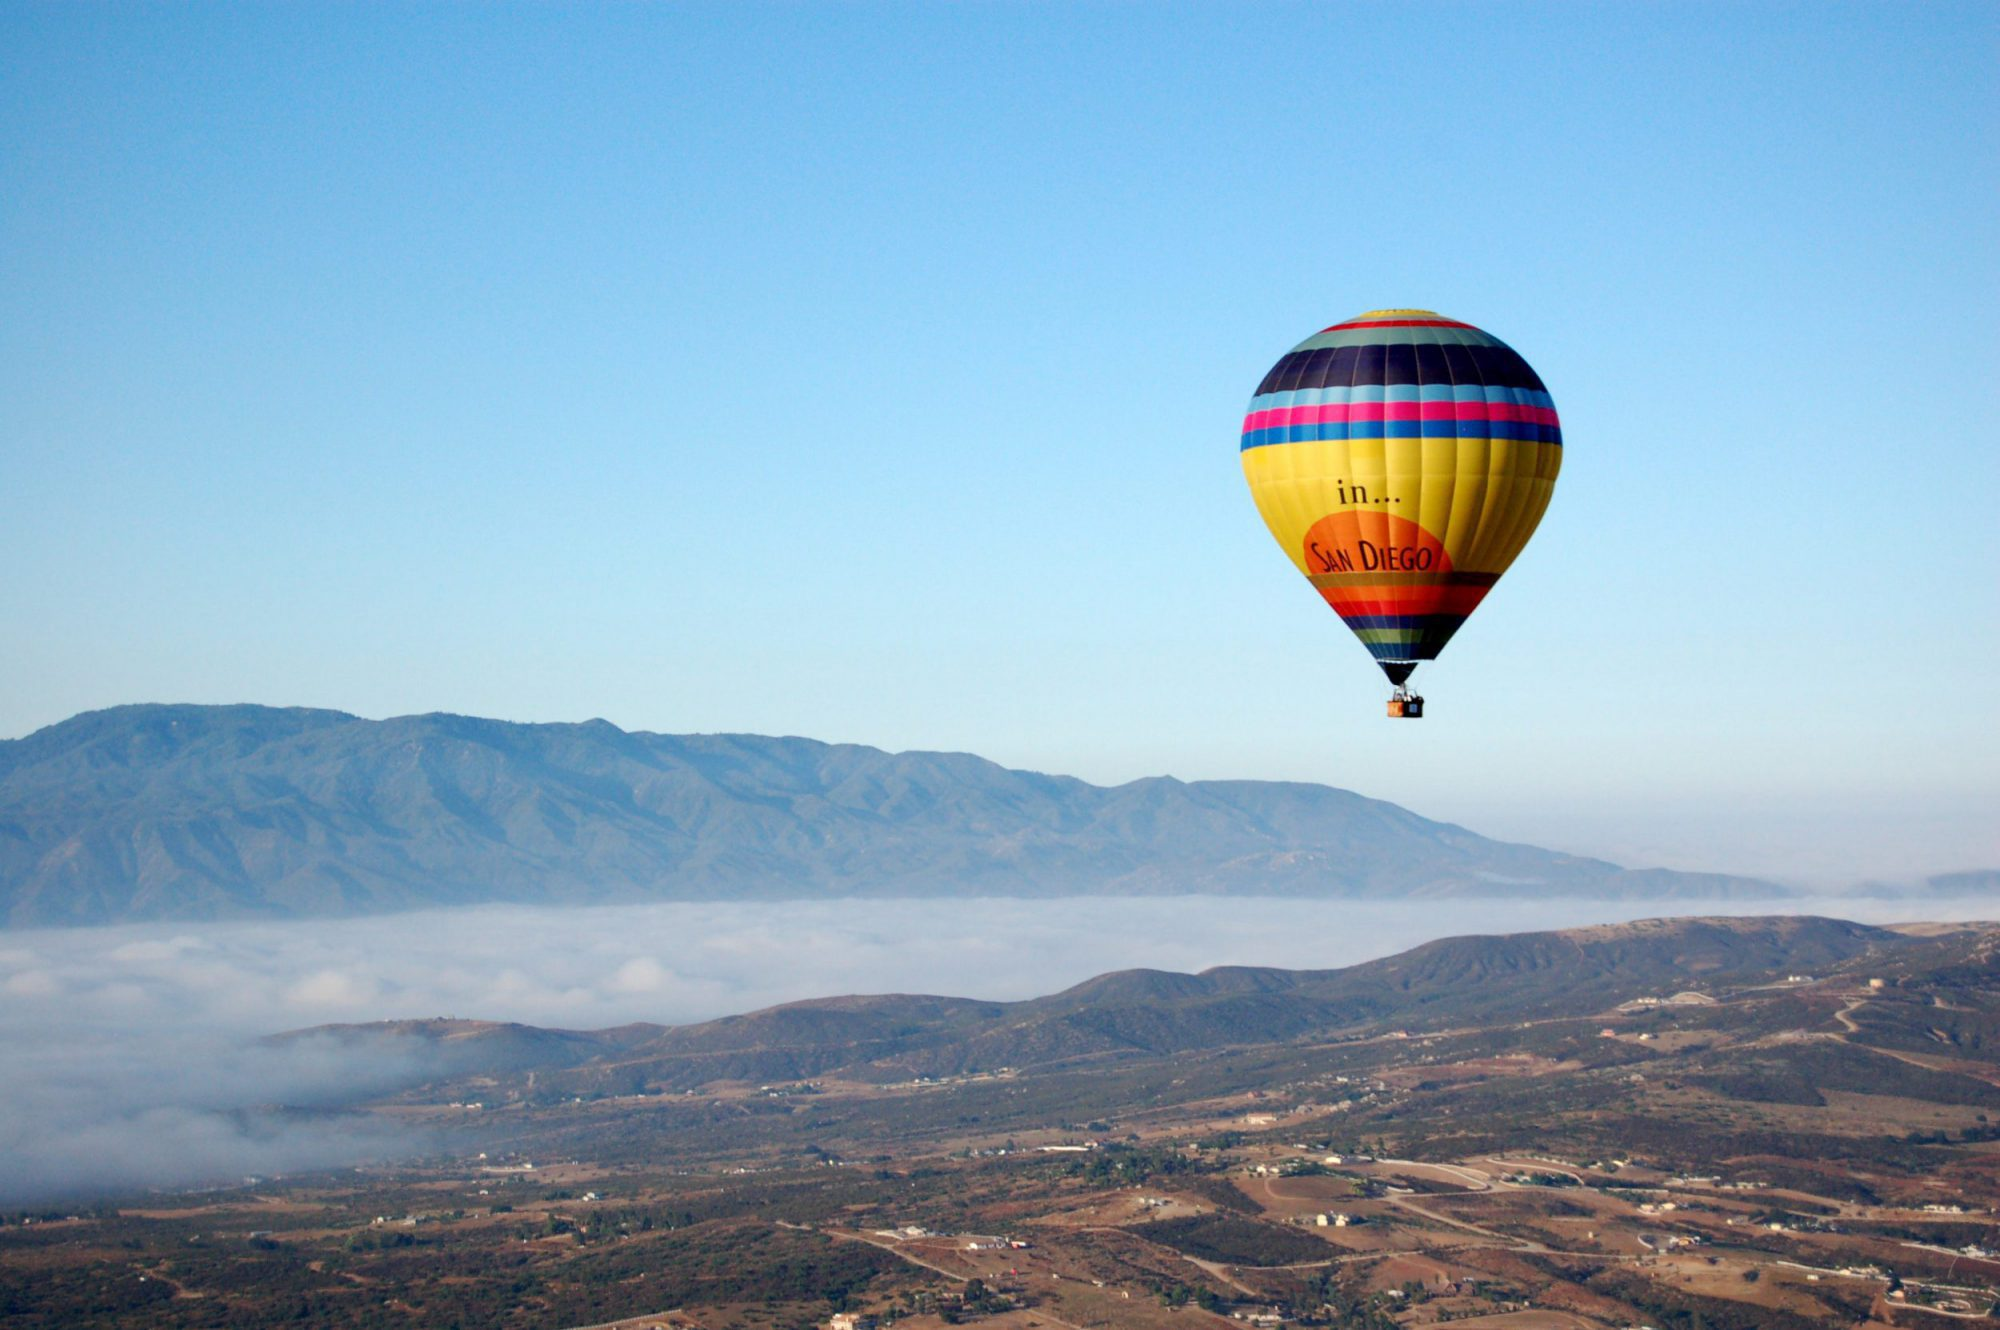 hot air balloon floating across the land with mountains in the background